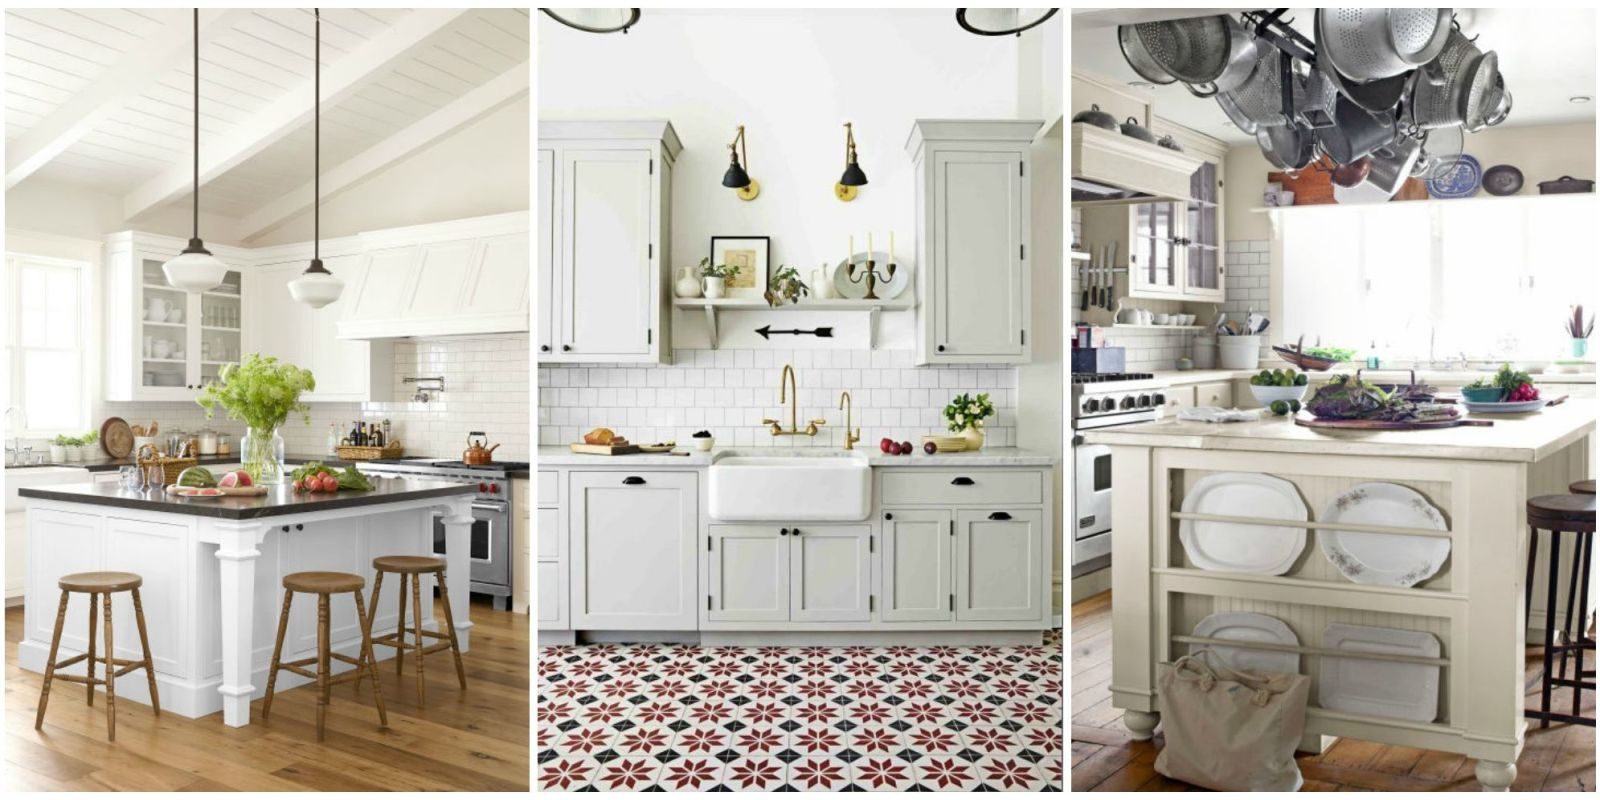 10 Best White Kitchen Cabinet Paint Colors Ideas For